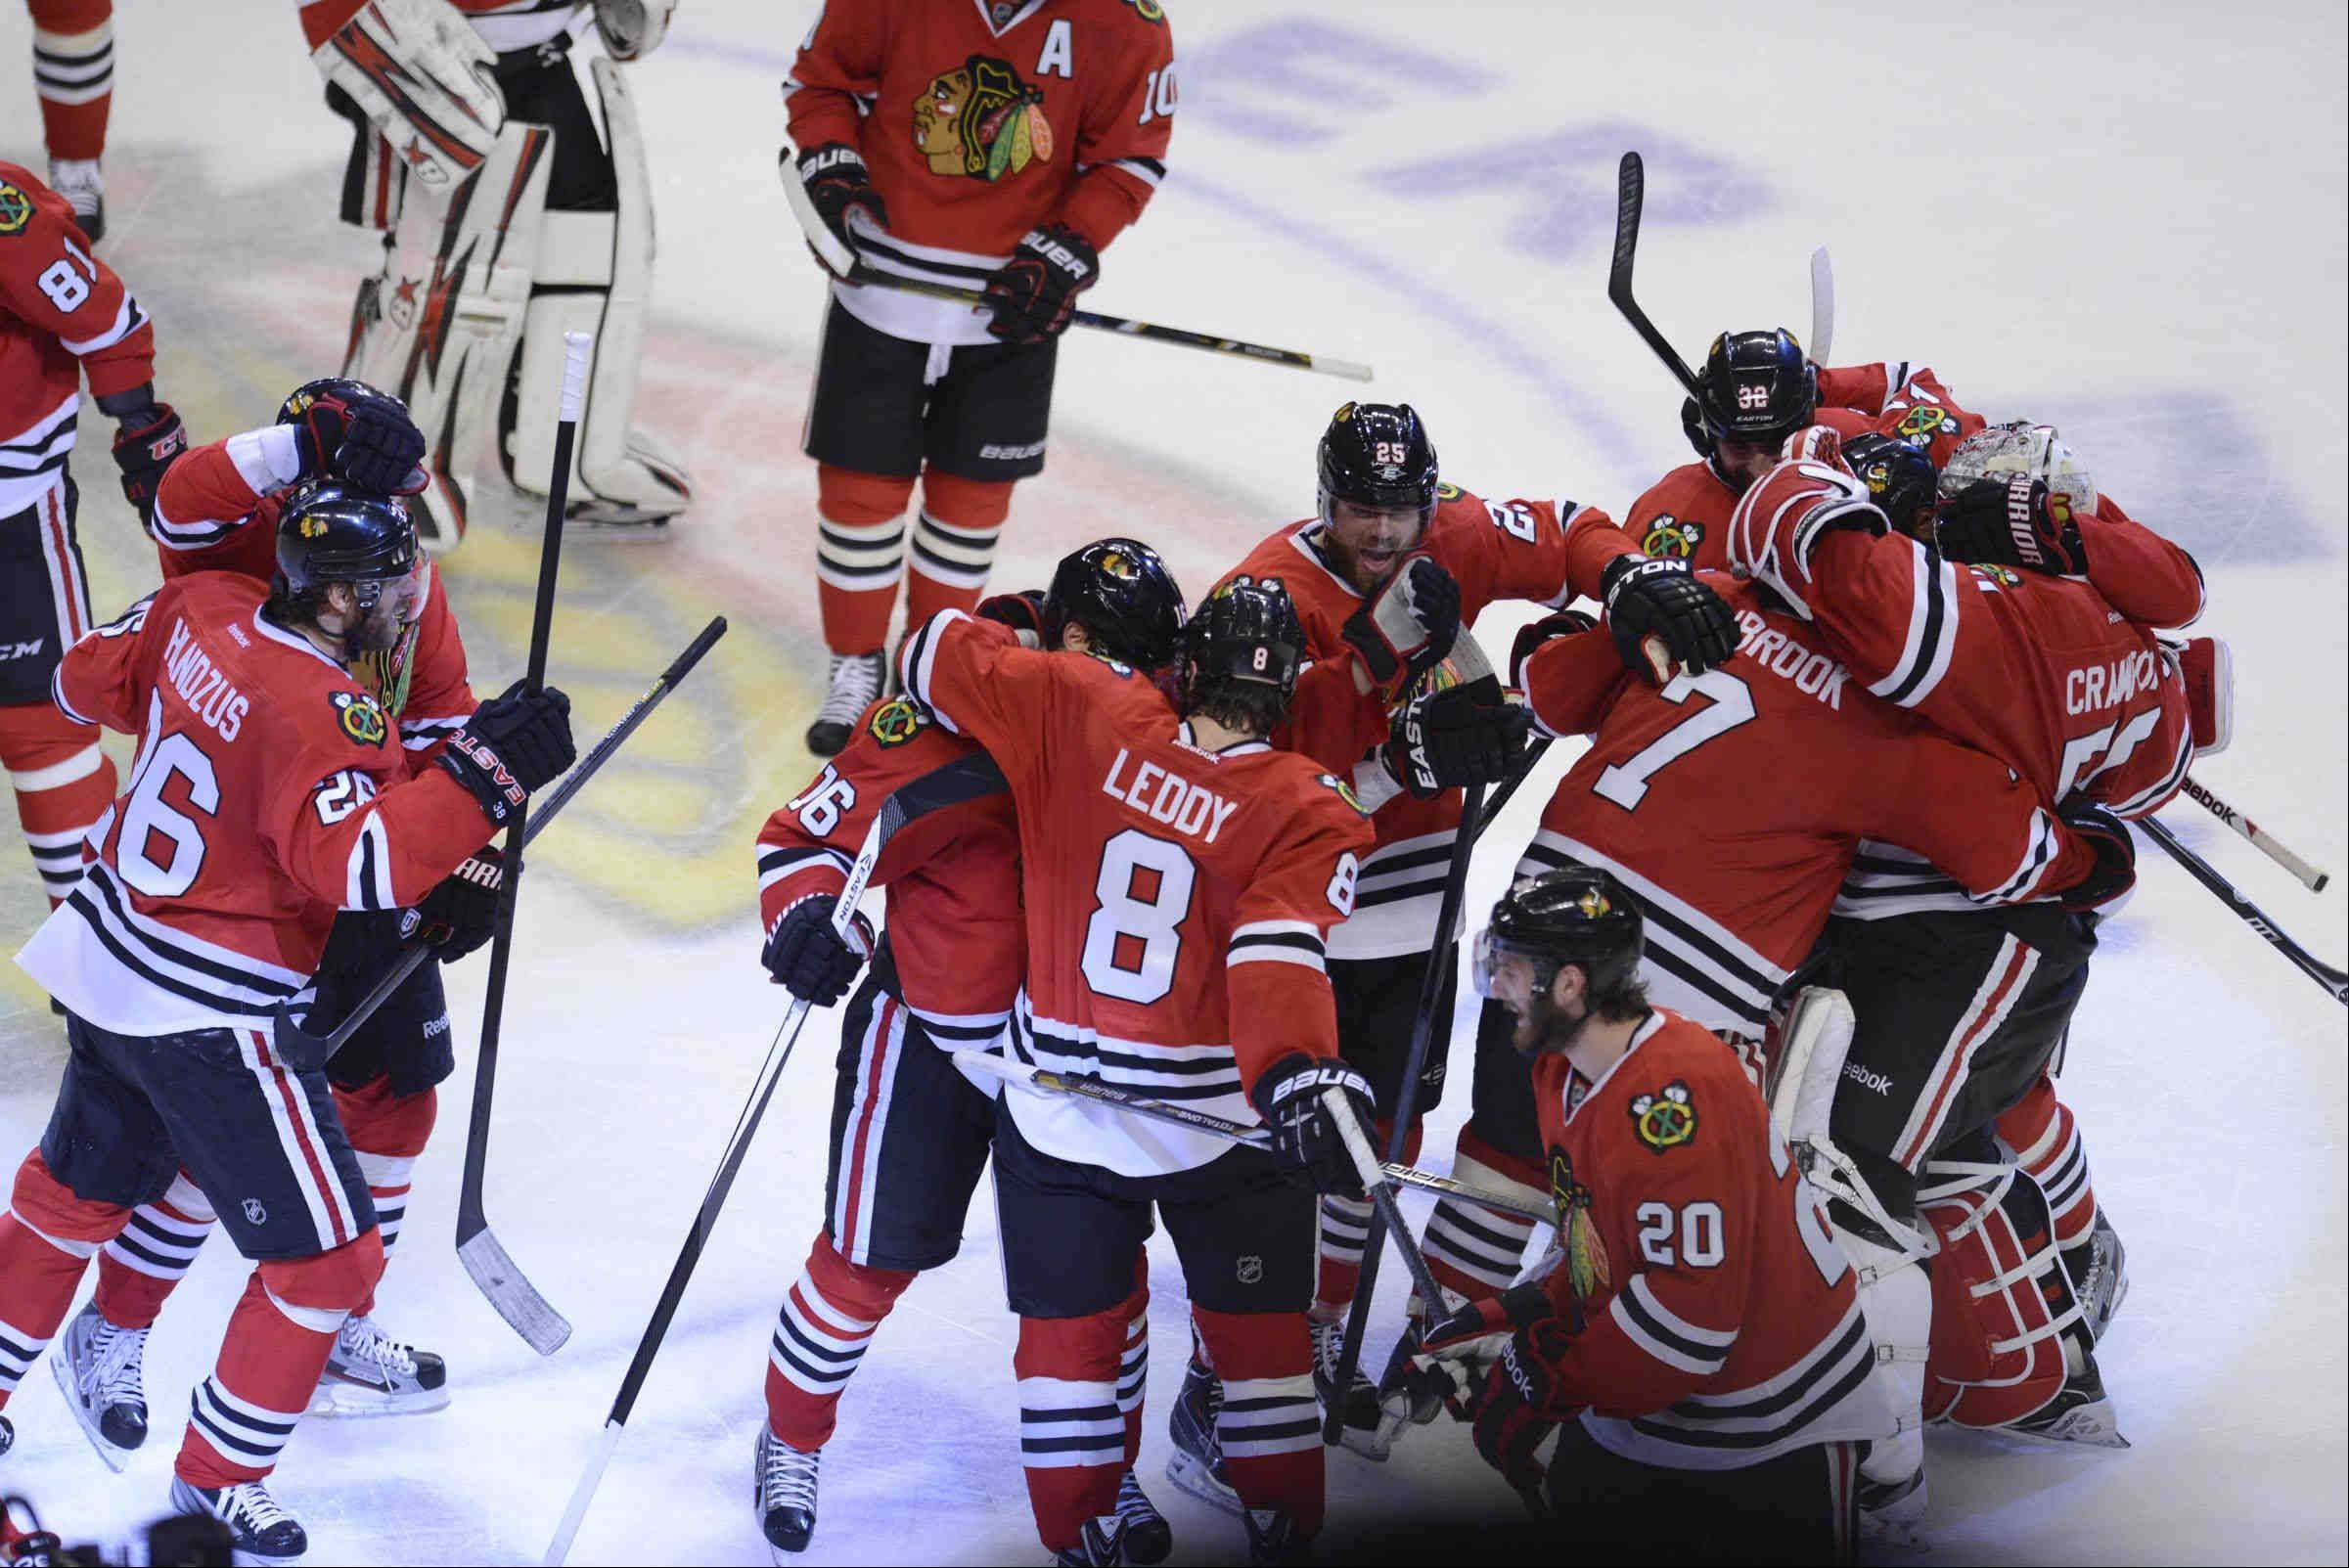 The Chicago Blackhawks celebrate winning the NHL Western Conference Championship at the United Center in Chicago.